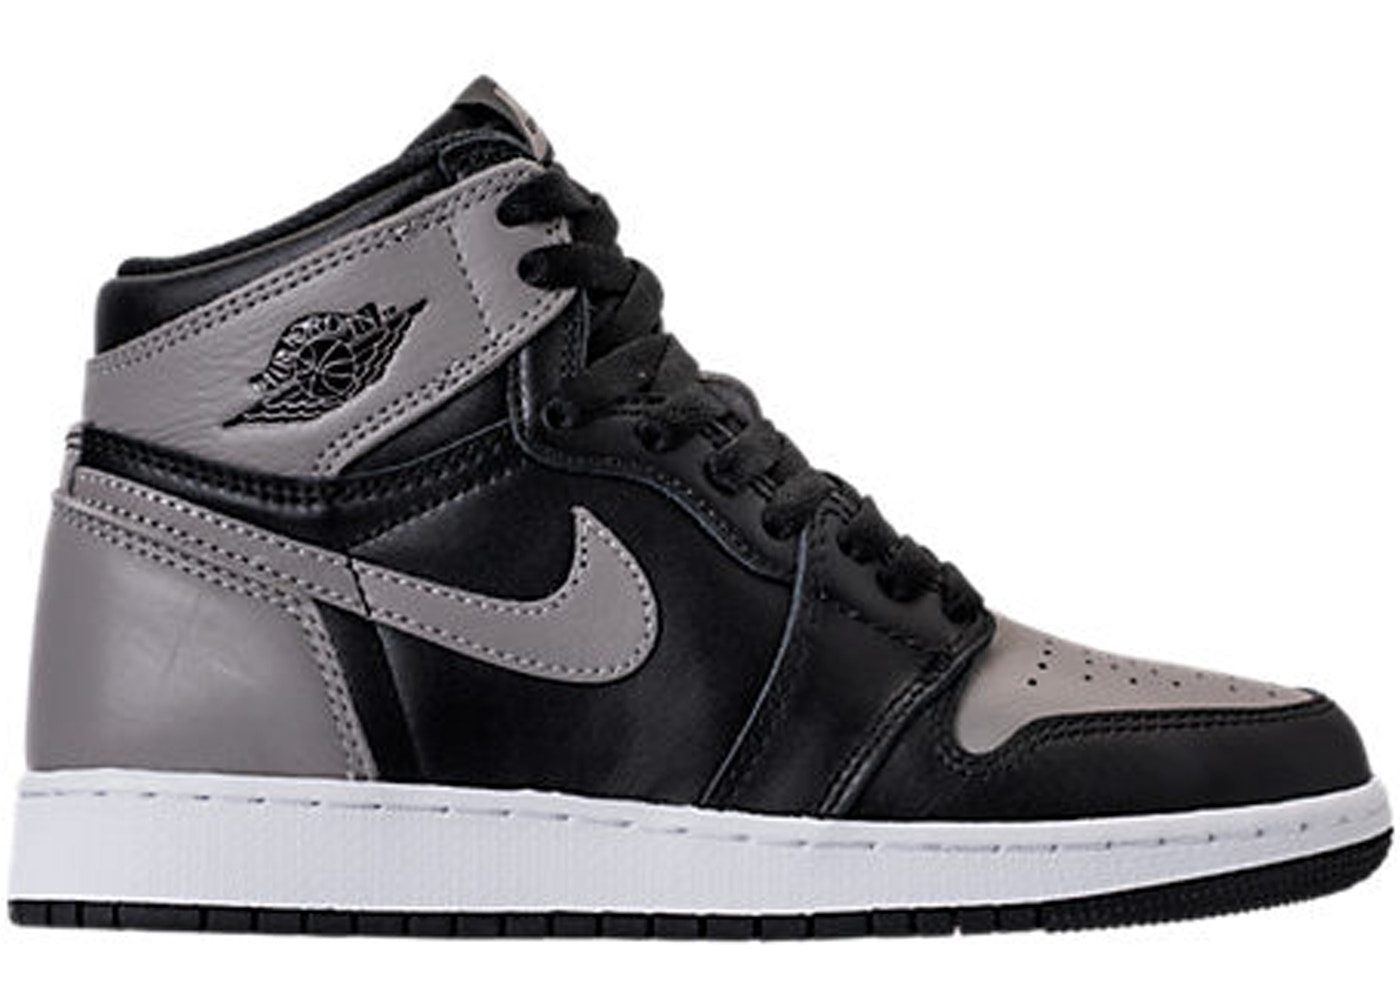 hot sale online fc519 753b6 Jordan 1 Retro High Shadow 2018 (GS) - 575441-013